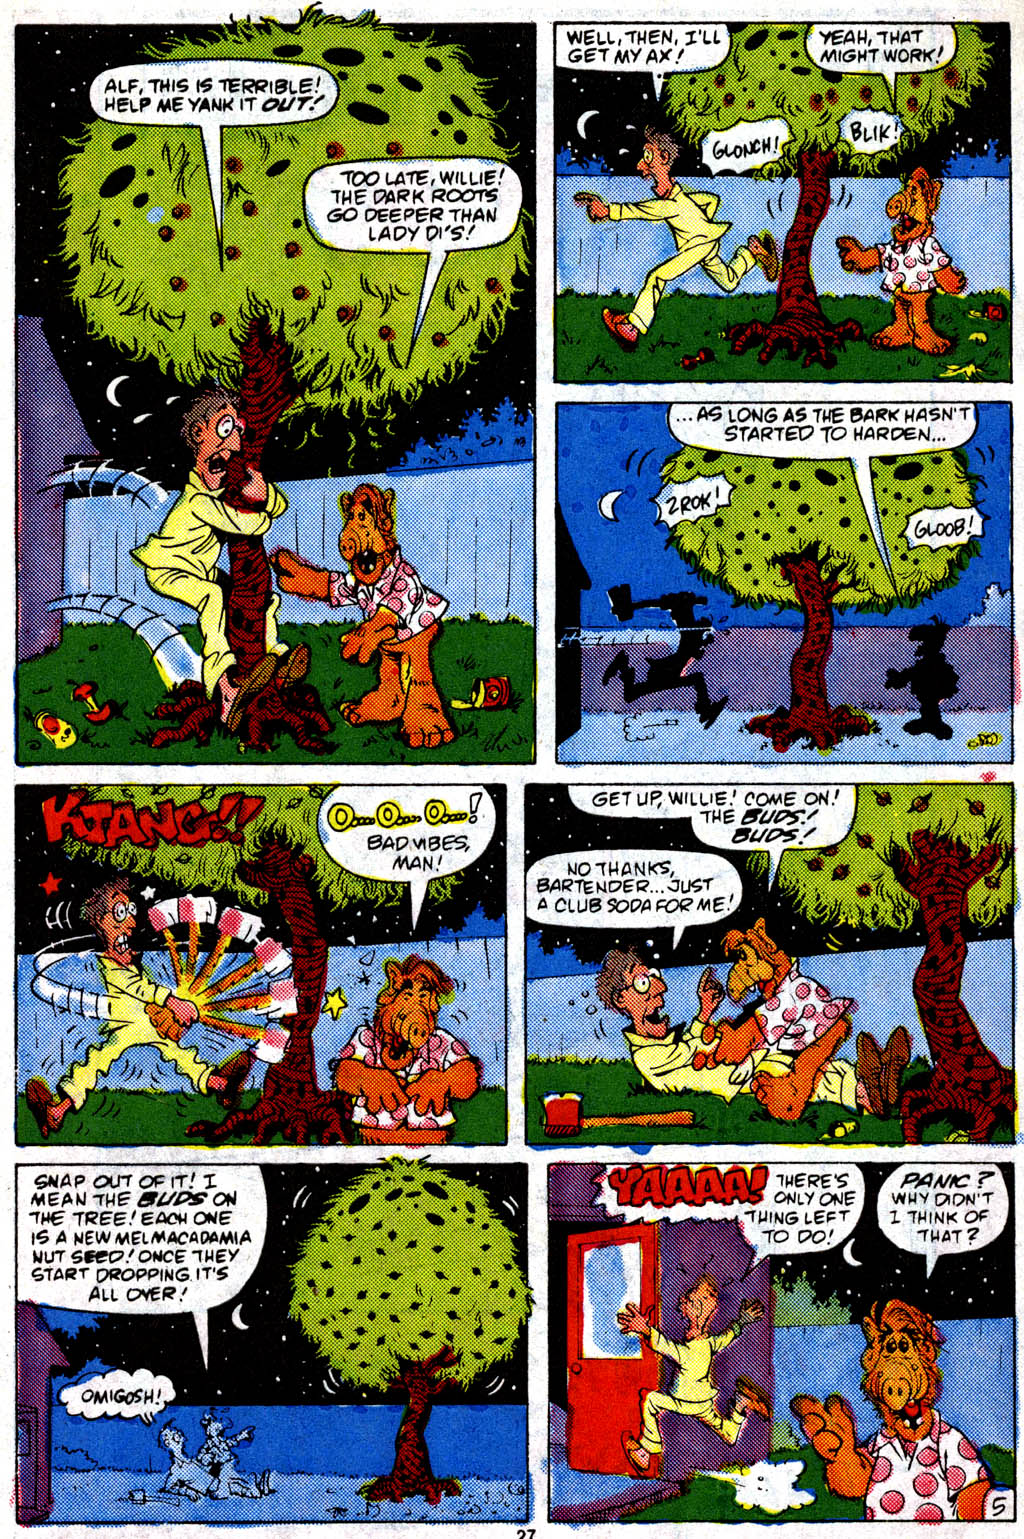 Read online ALF comic -  Issue #9 - 22